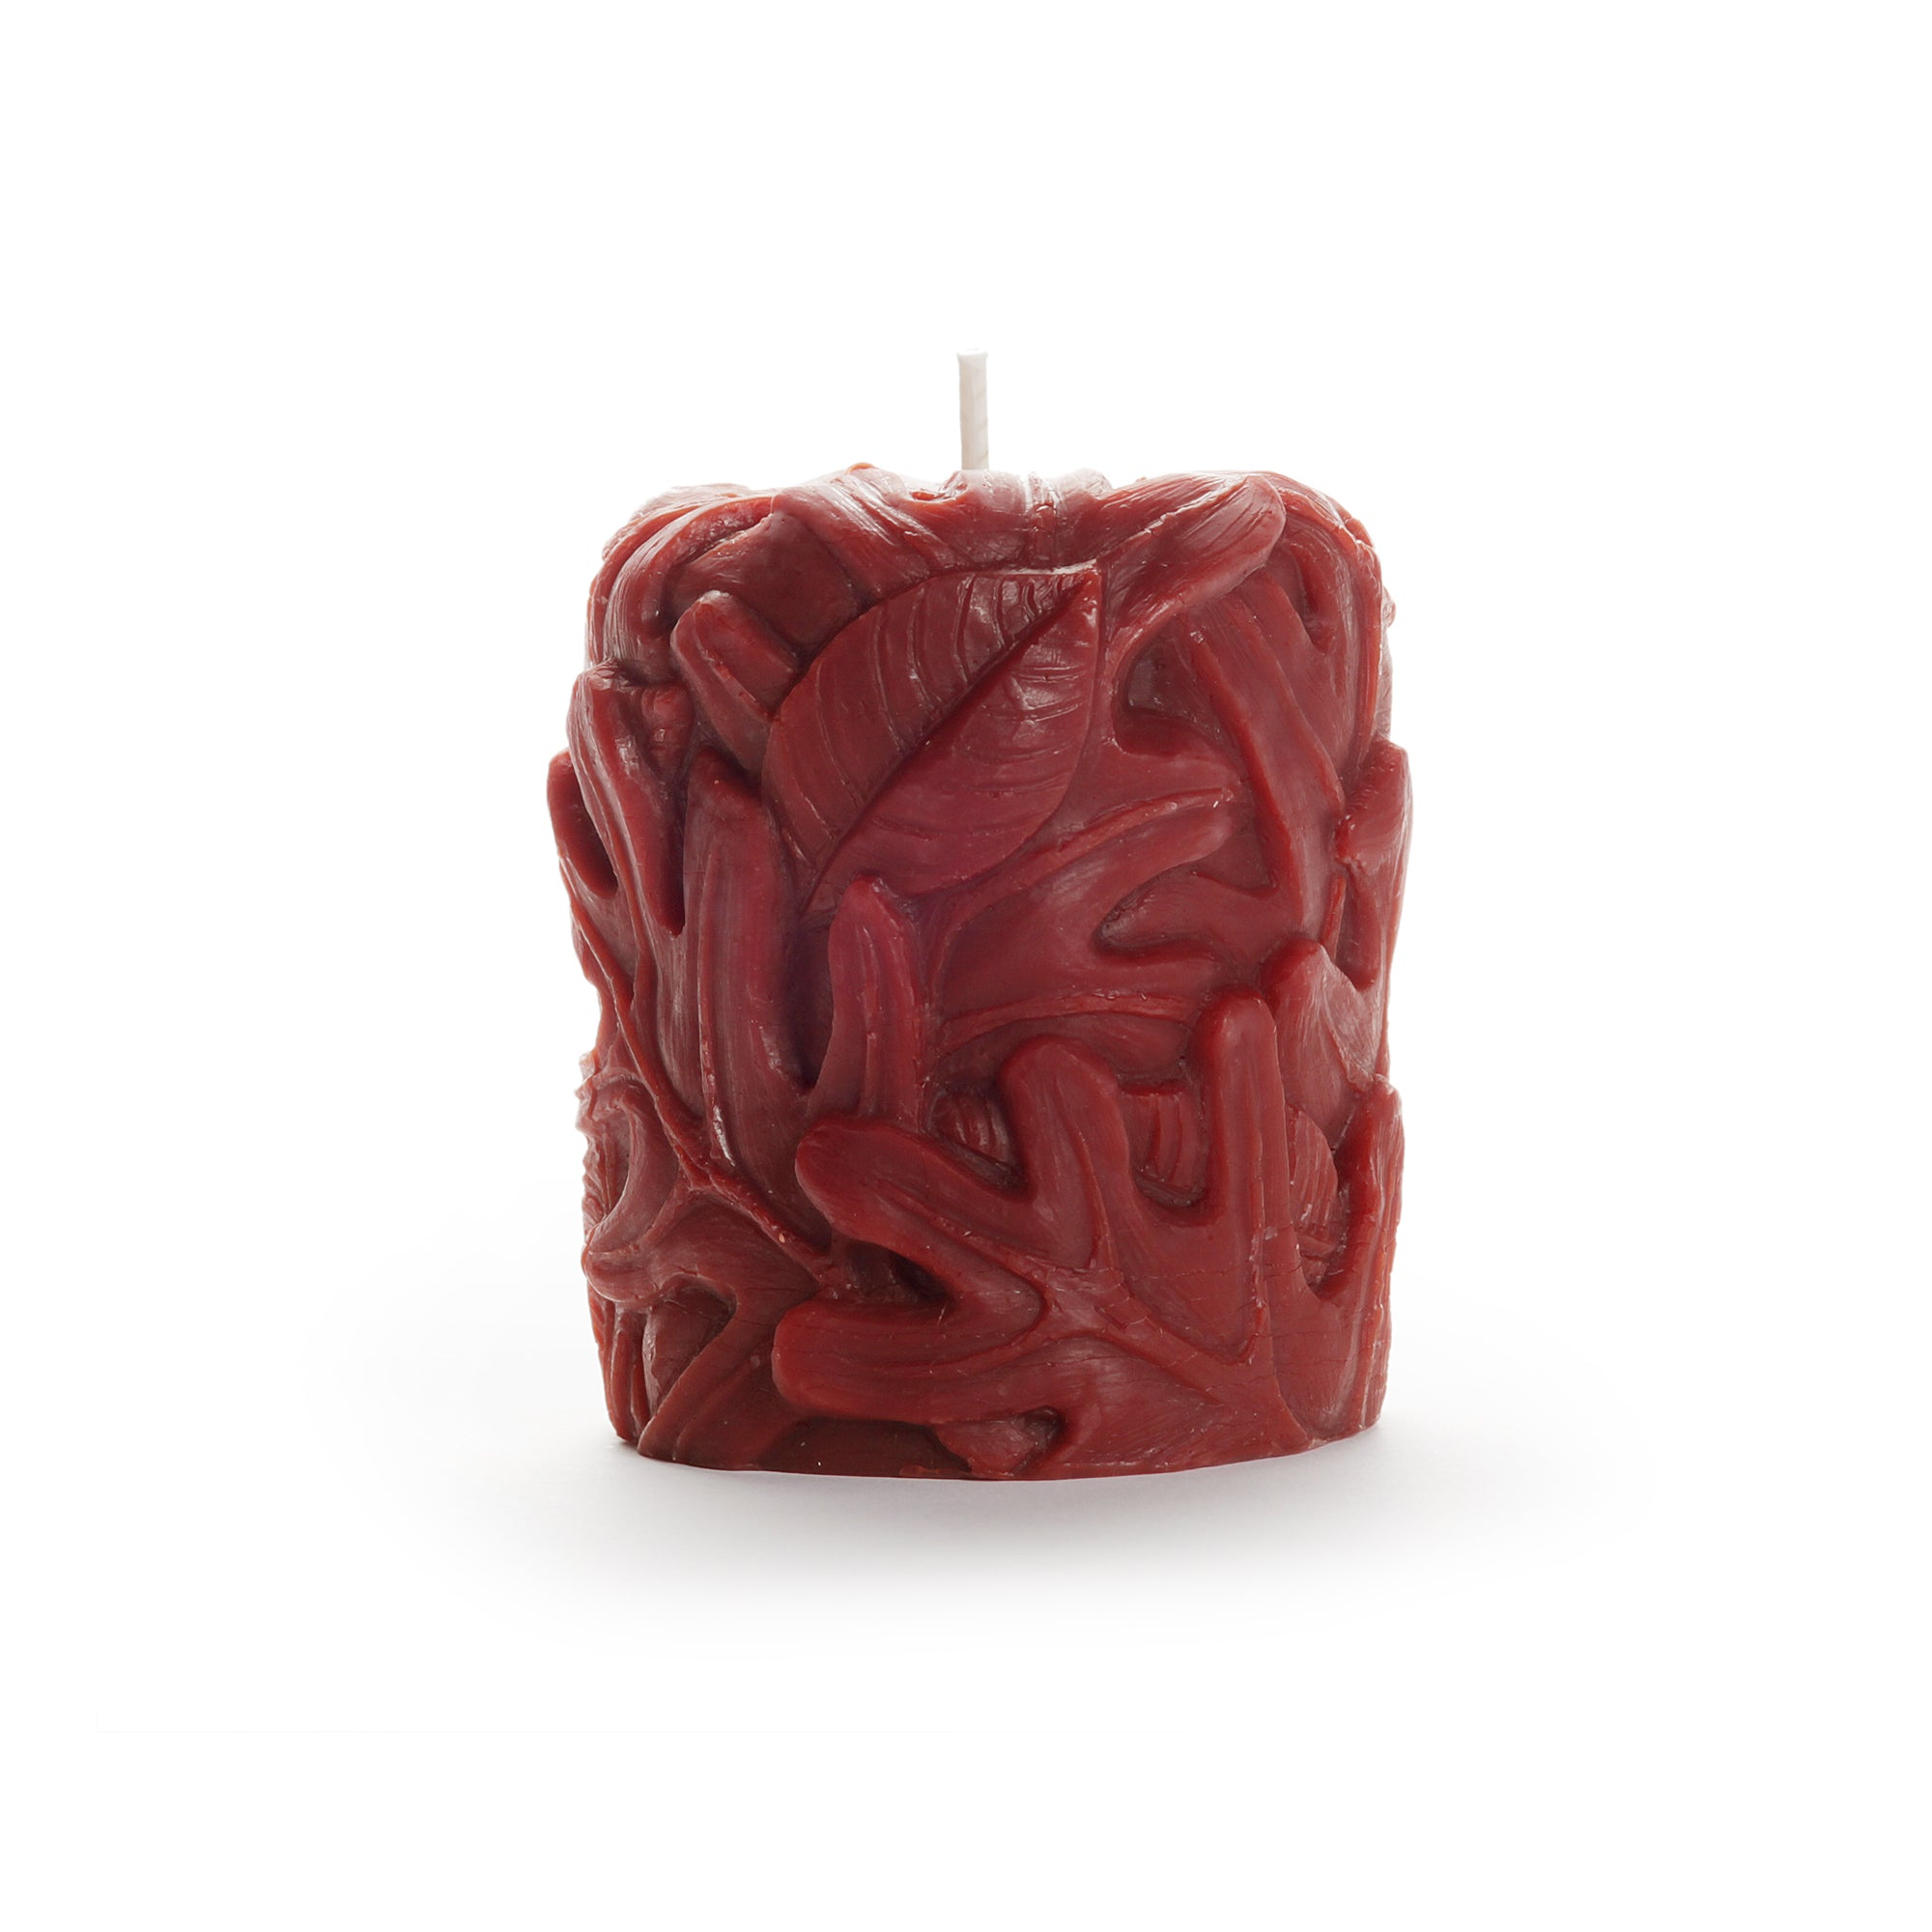 sculpted leaf design, pillar beeswax candle, dark red